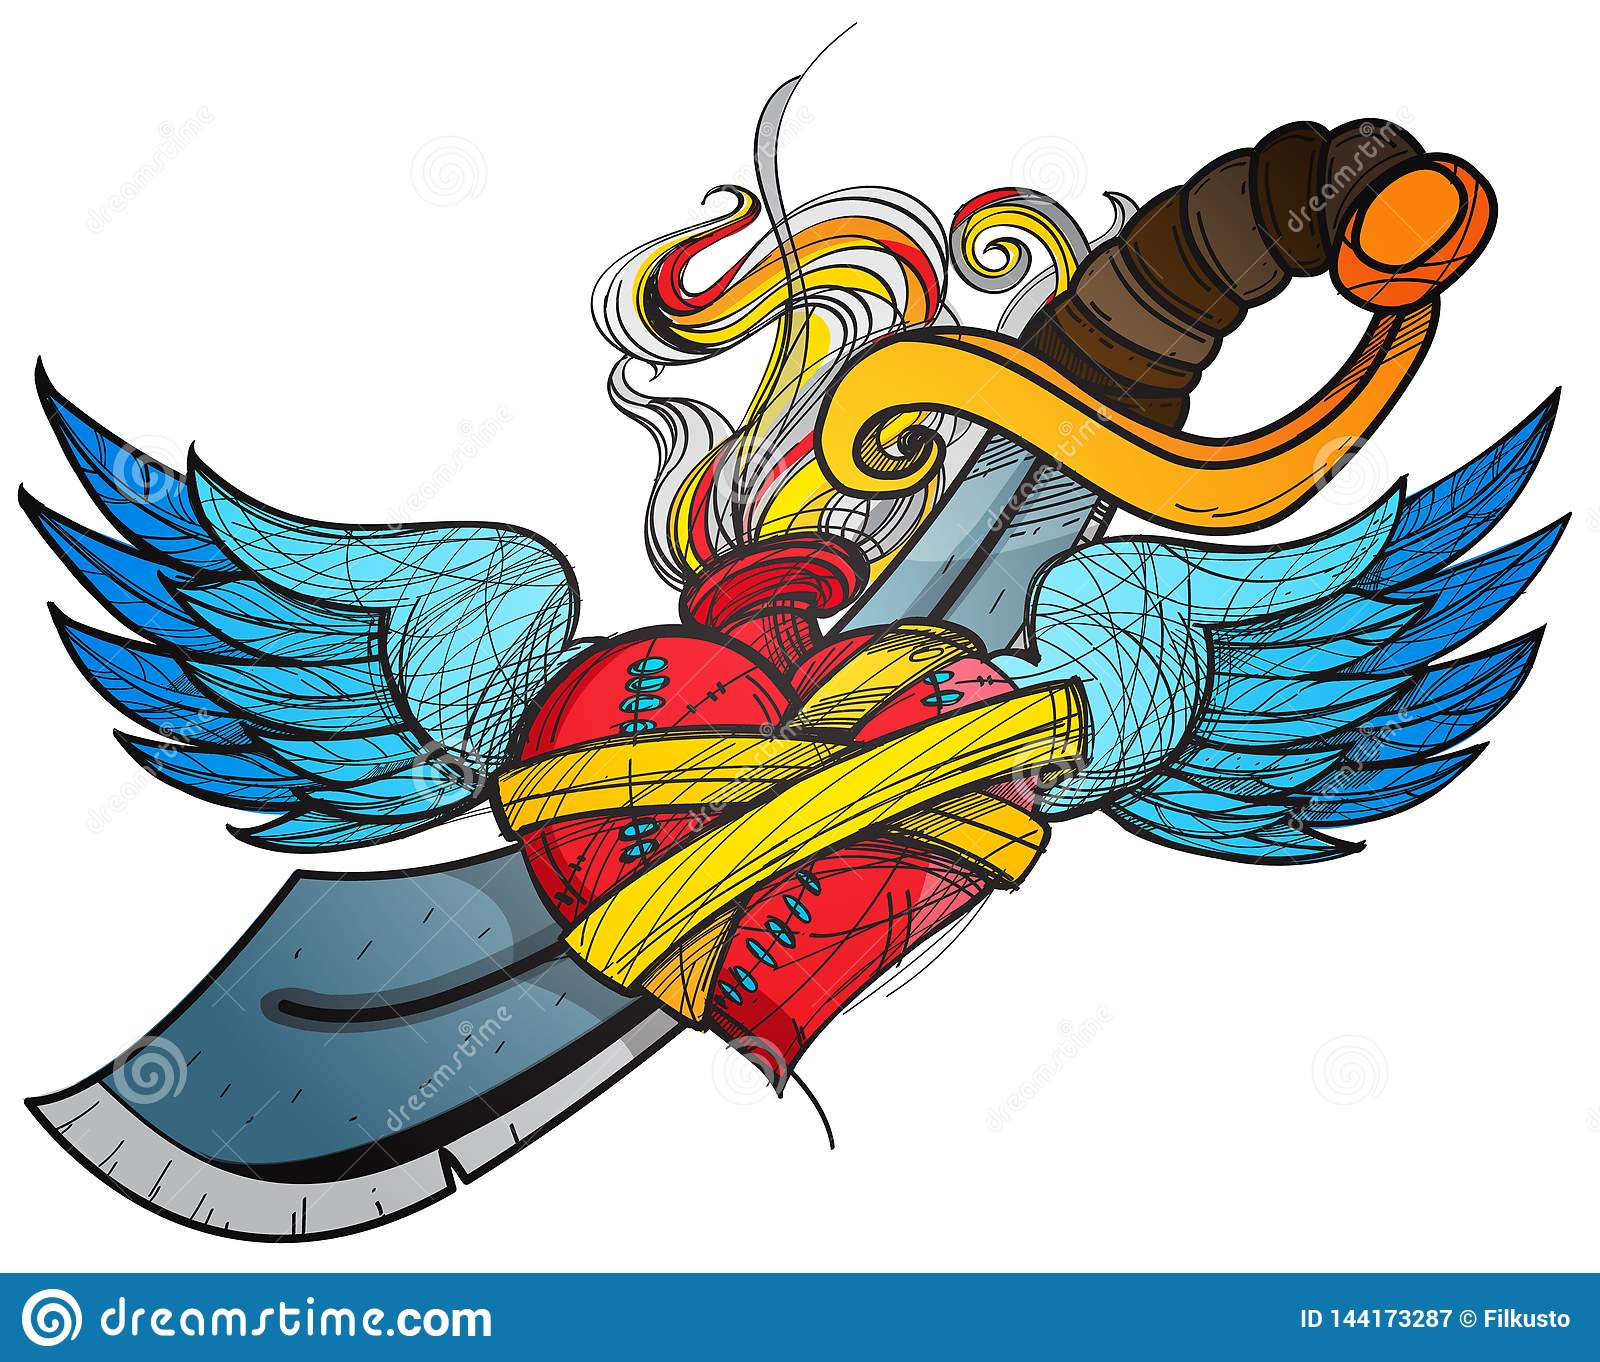 A sketch of a tattoo. Heart with wings and a sword colored illustration